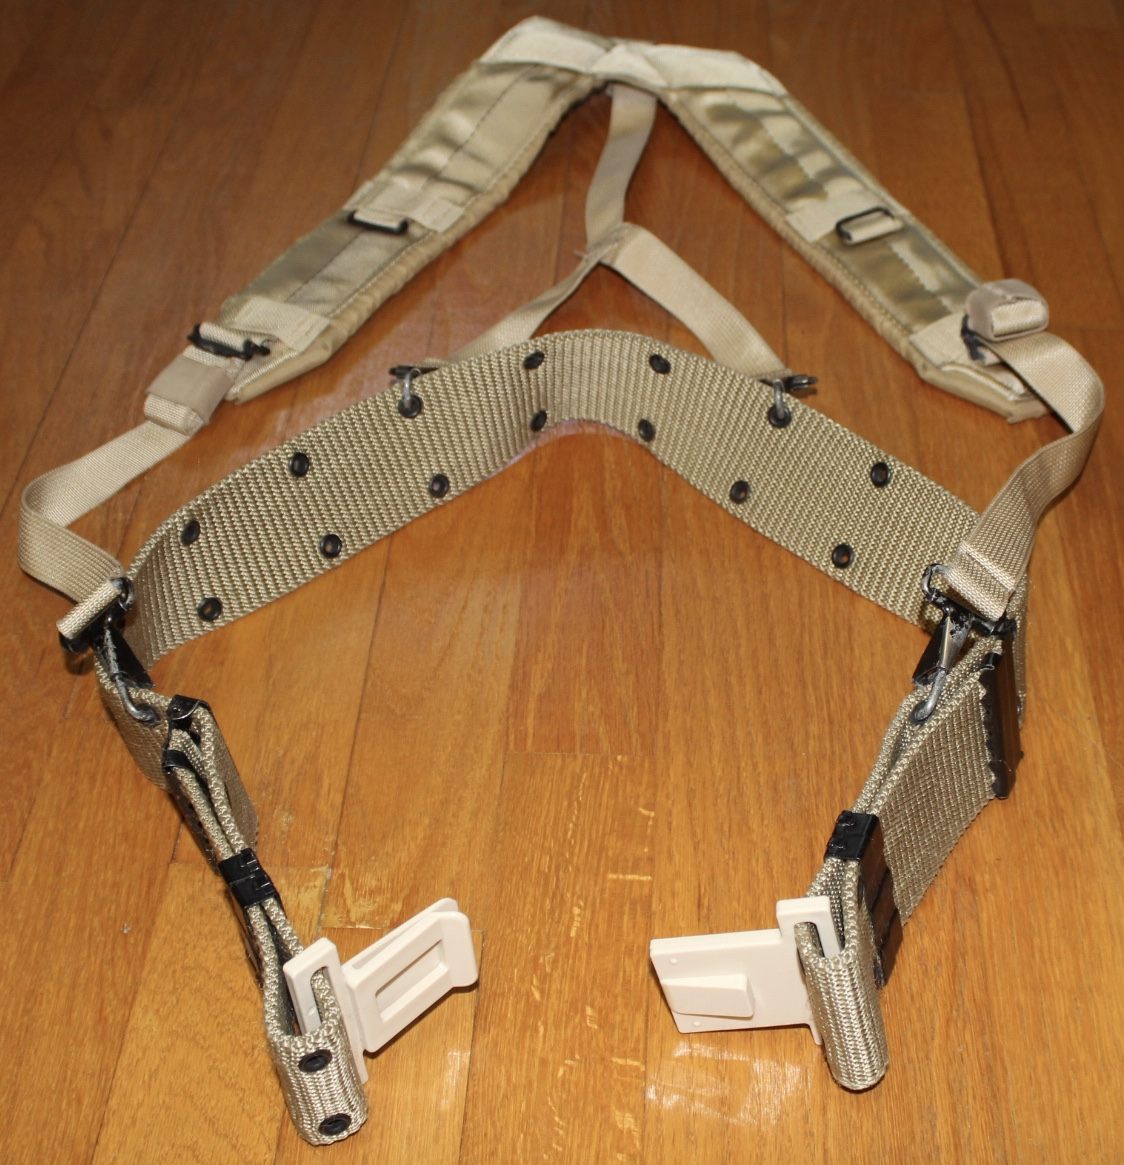 8465-00-001-6487 ~GENTLY USED~ NSN MILITARY INDIVIDUAL EQUIPMENT BELTS Large